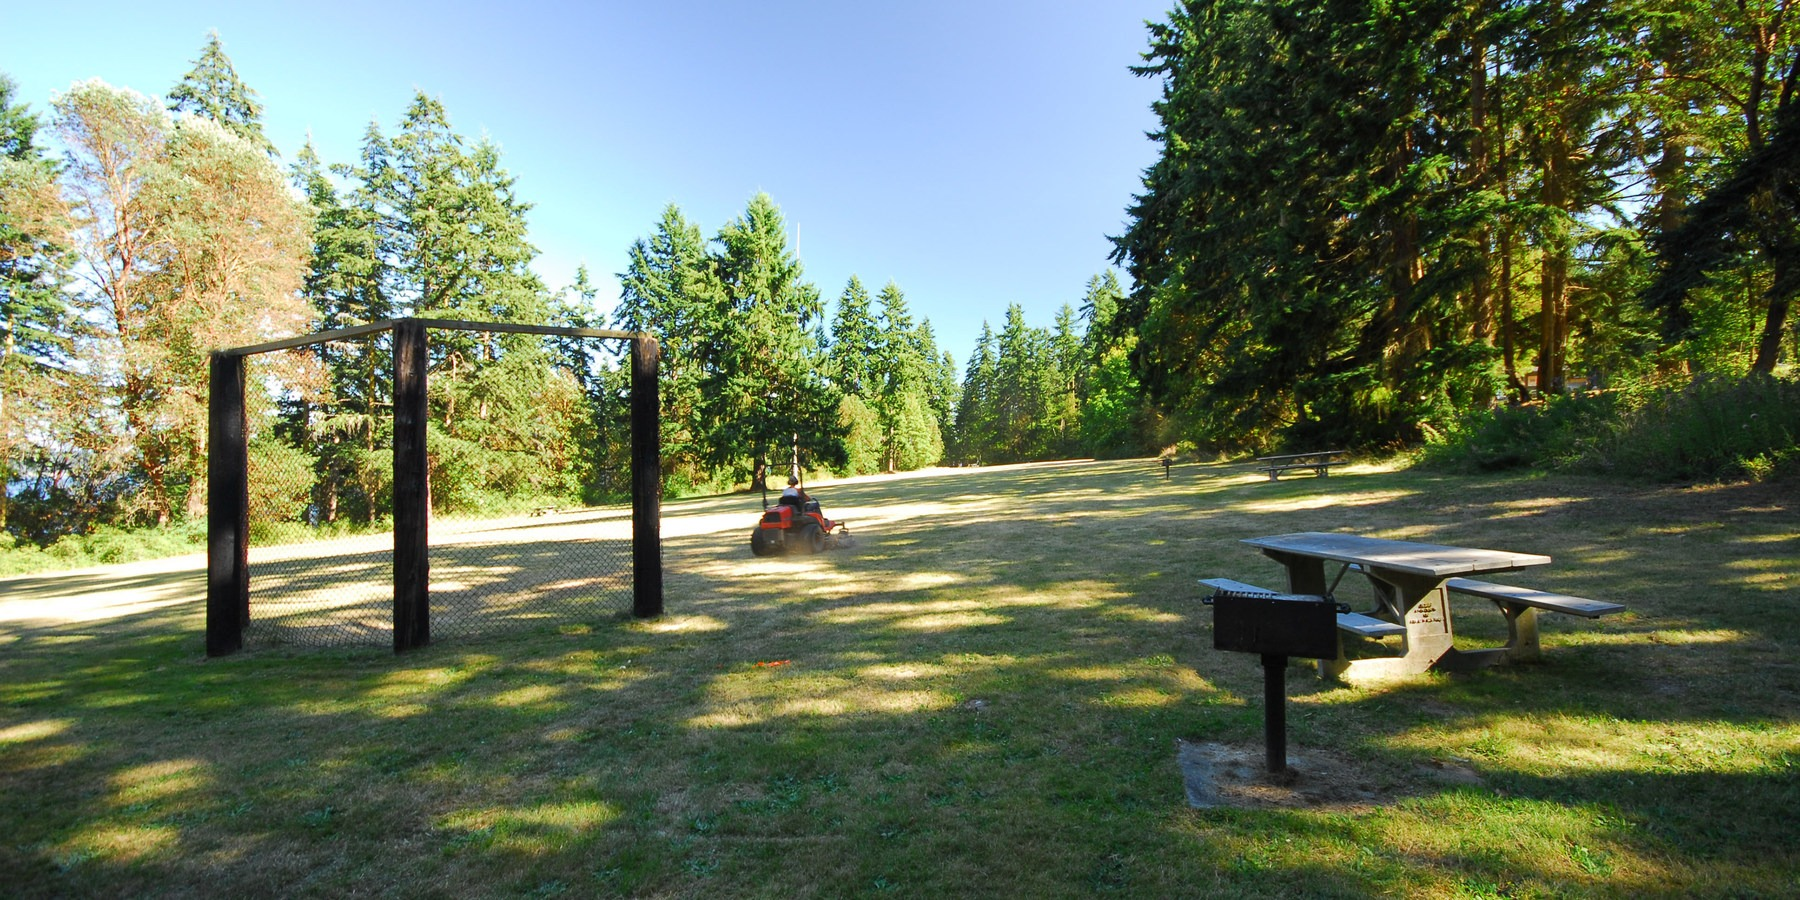 Fort townsend state park campground outdoor project fort townsend picnic area and sports field at fort townsend state park fort townsend state park publicscrutiny Images